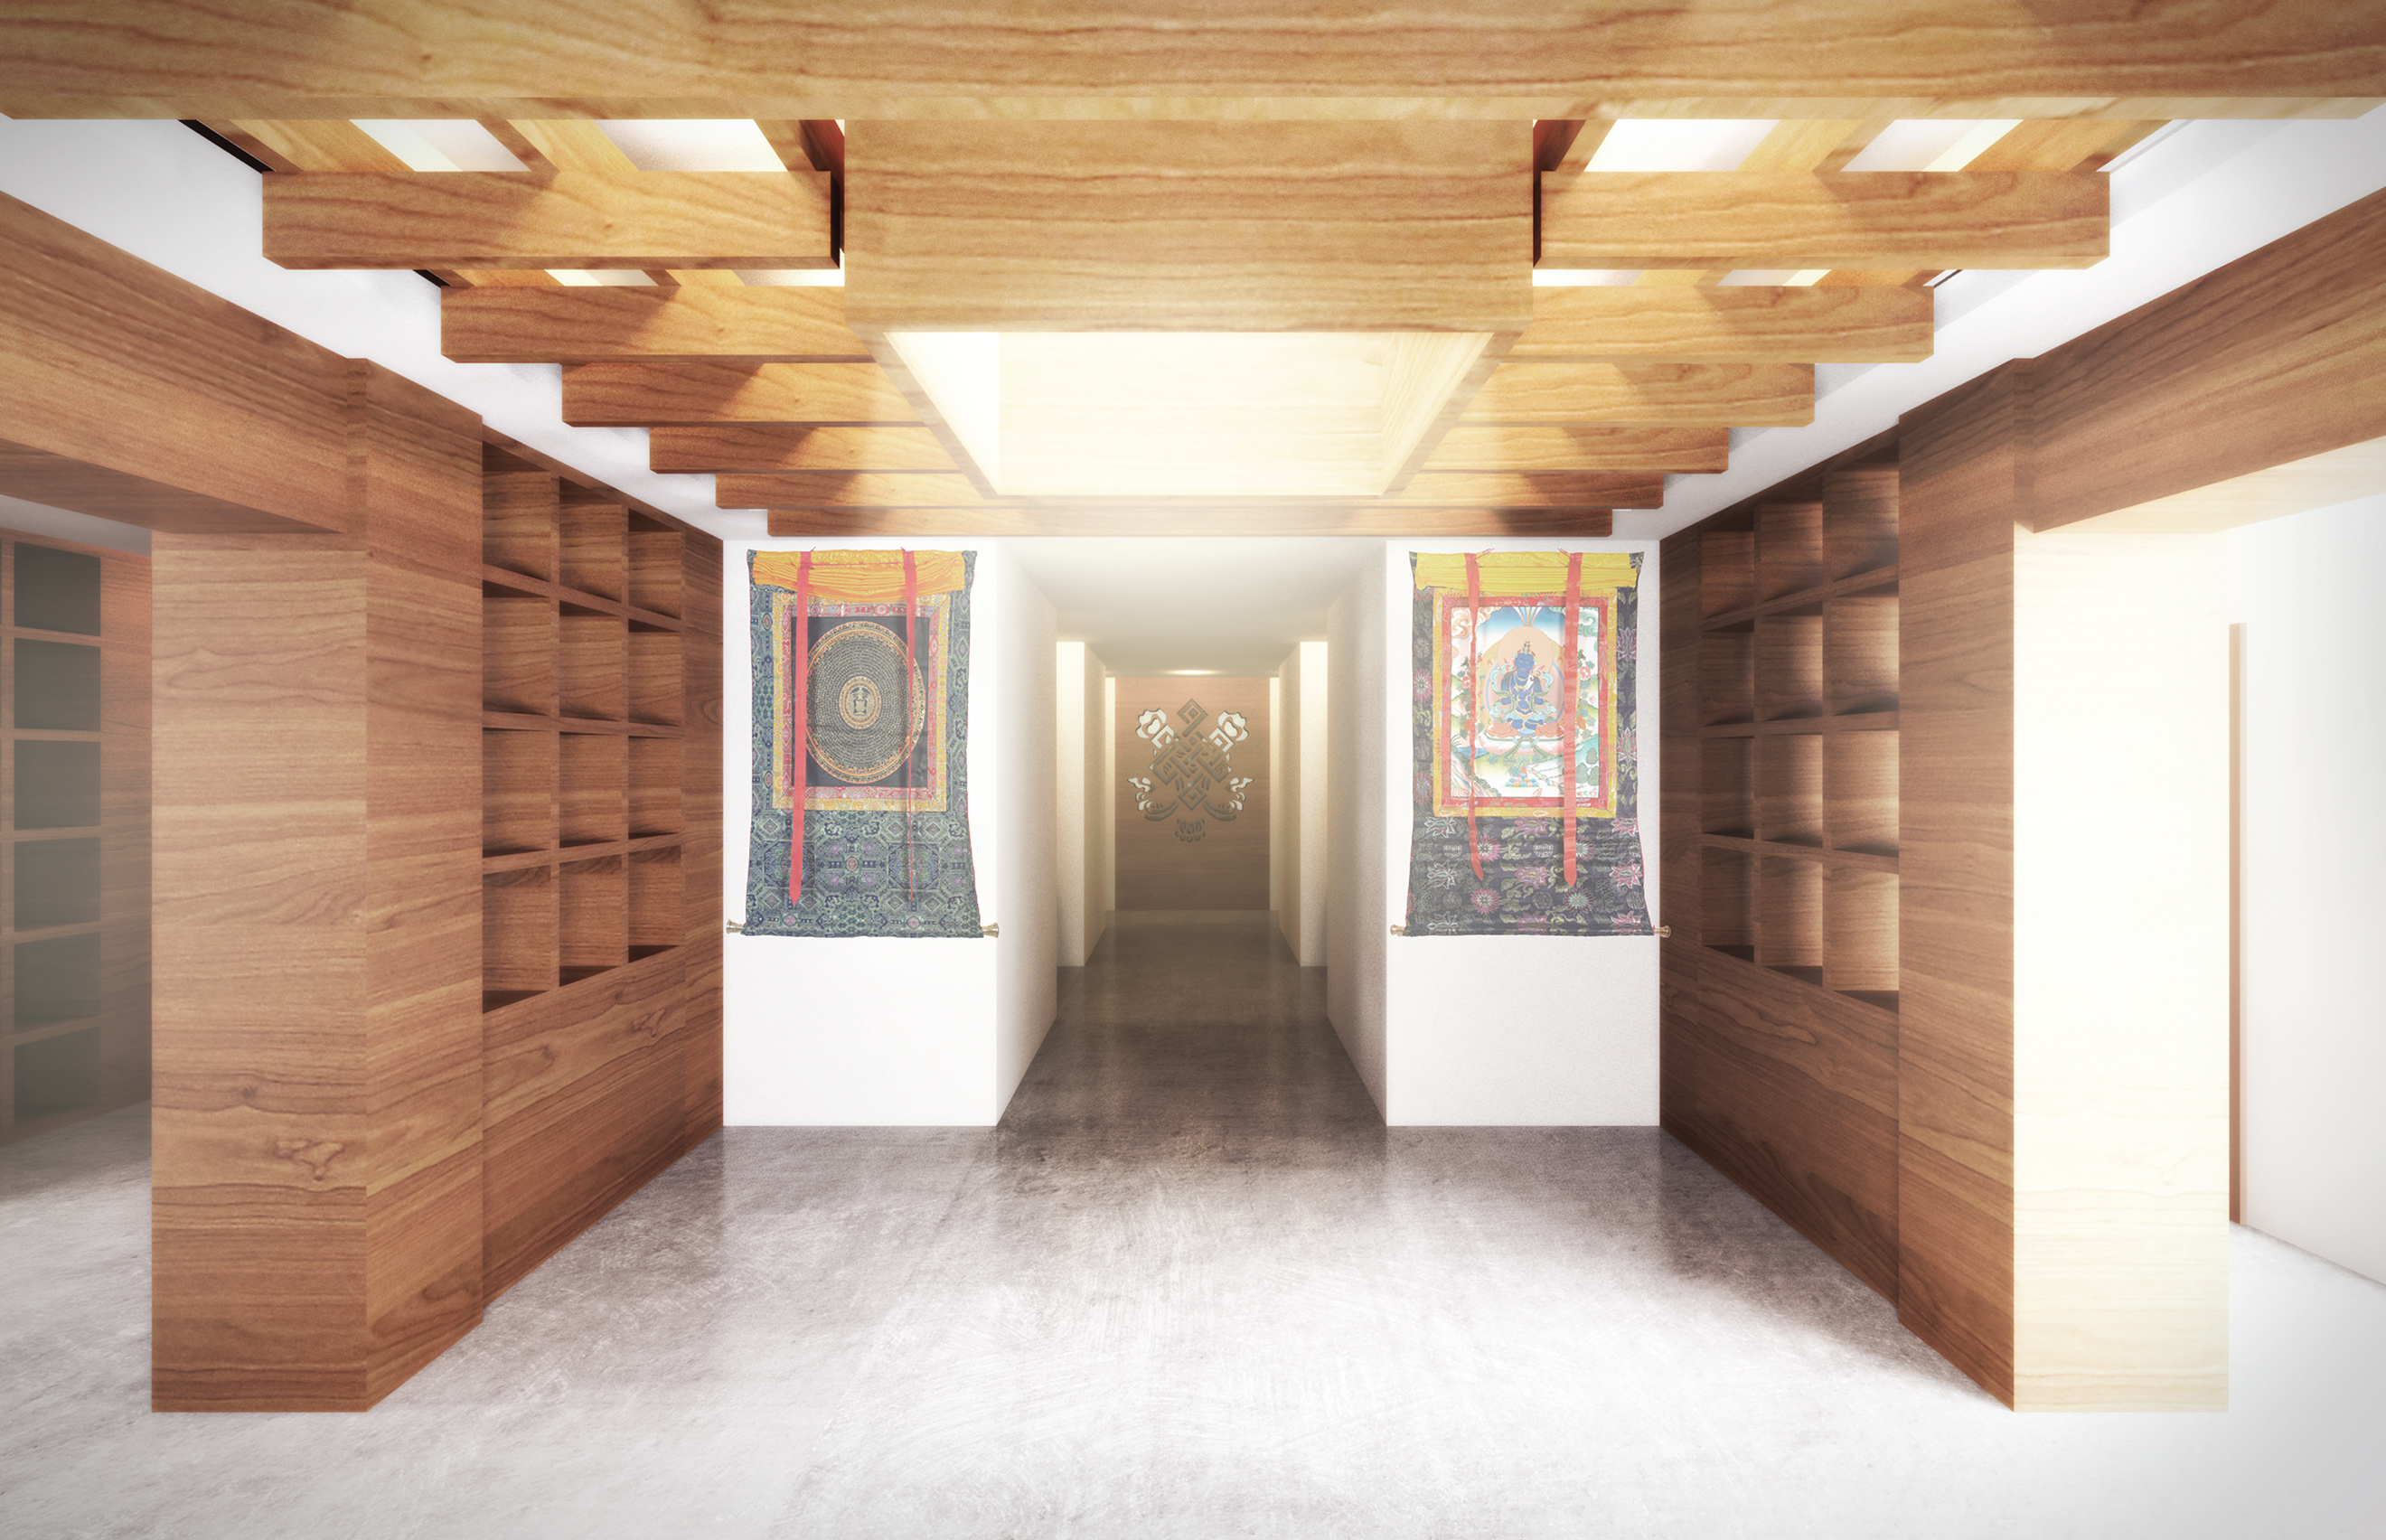 A Design Rendering Of The Entrance At Tibetan Community Center Photo Credit University